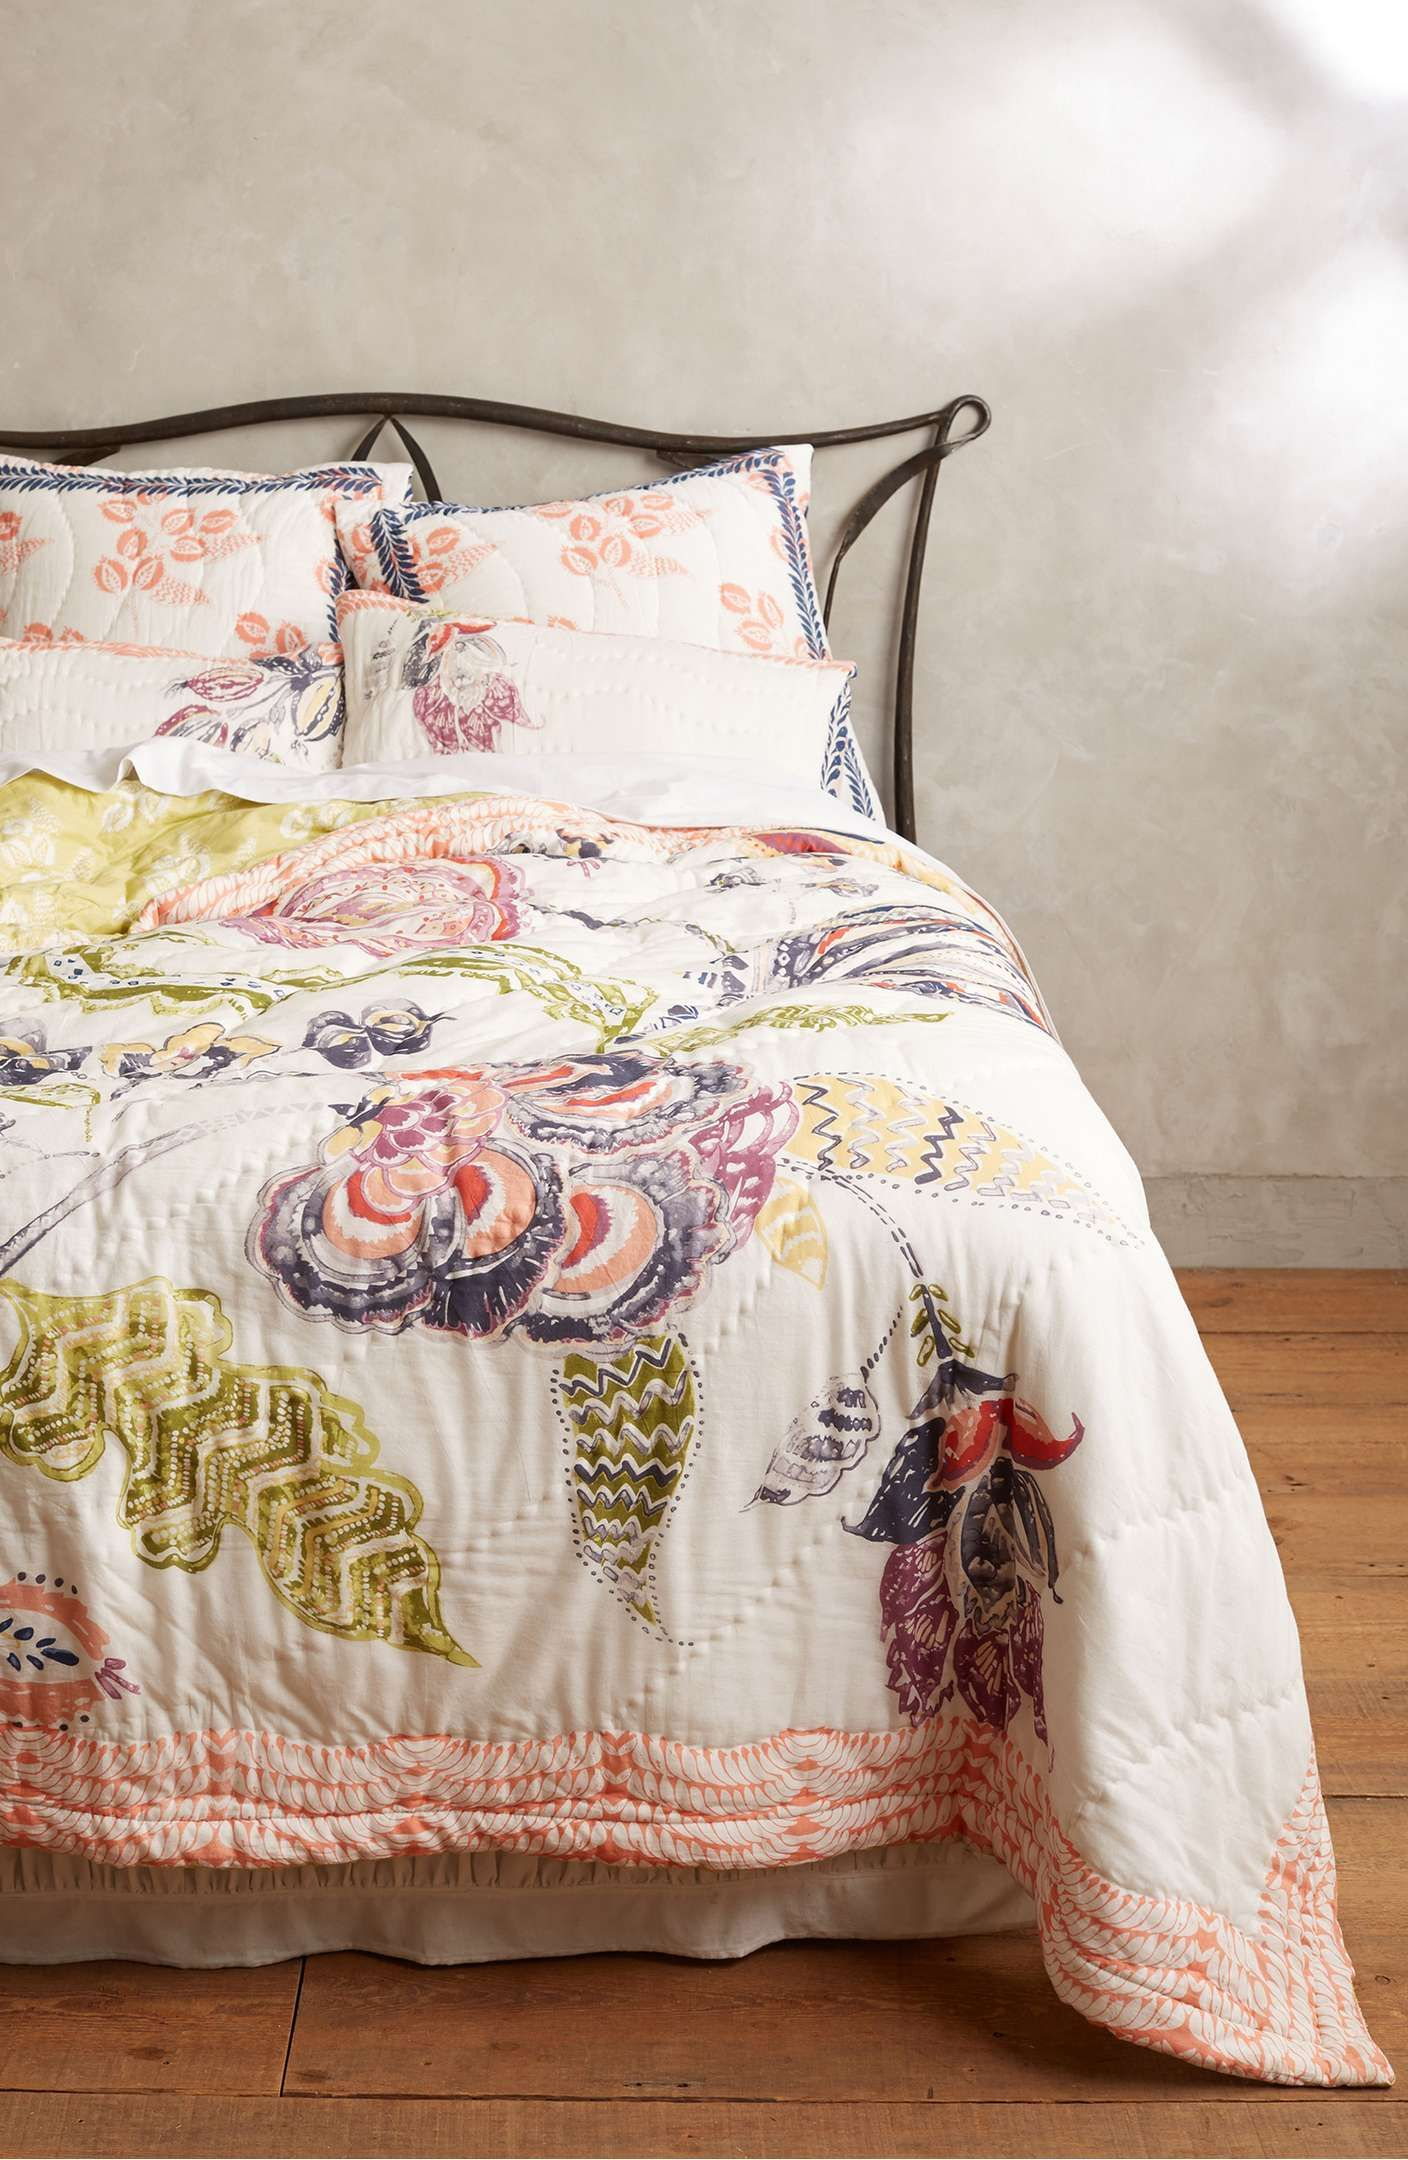 Main Image Anthropologie Woodblock Floral Quilt In 2020 Anthropologie Bedding Floral Quilt Bedding Beautiful Bedding